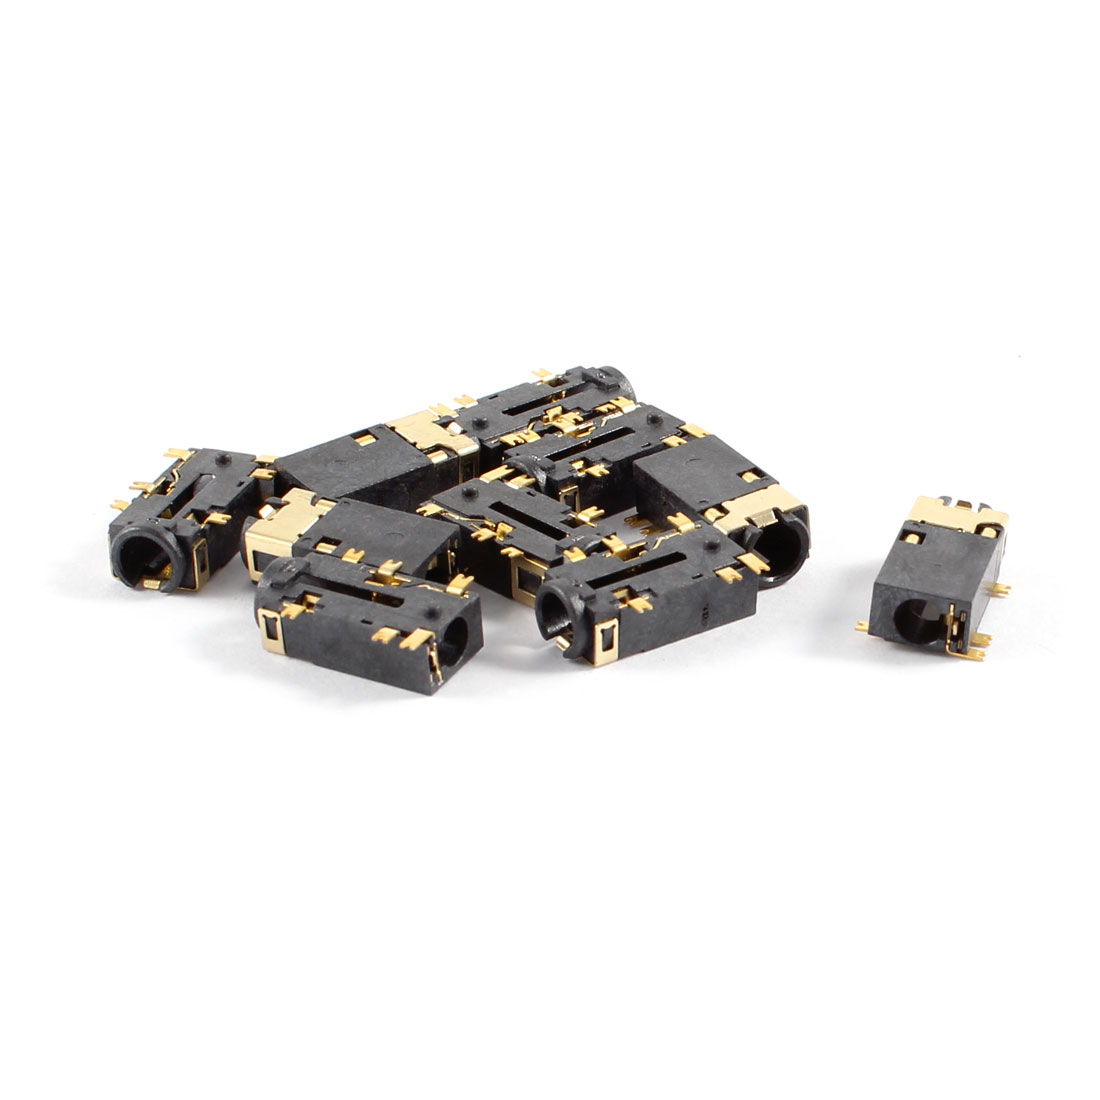 10 Pcs PCB Mount 6 Terminals Female 3.5mm Headphone Audio Jack Gold Tone Plated